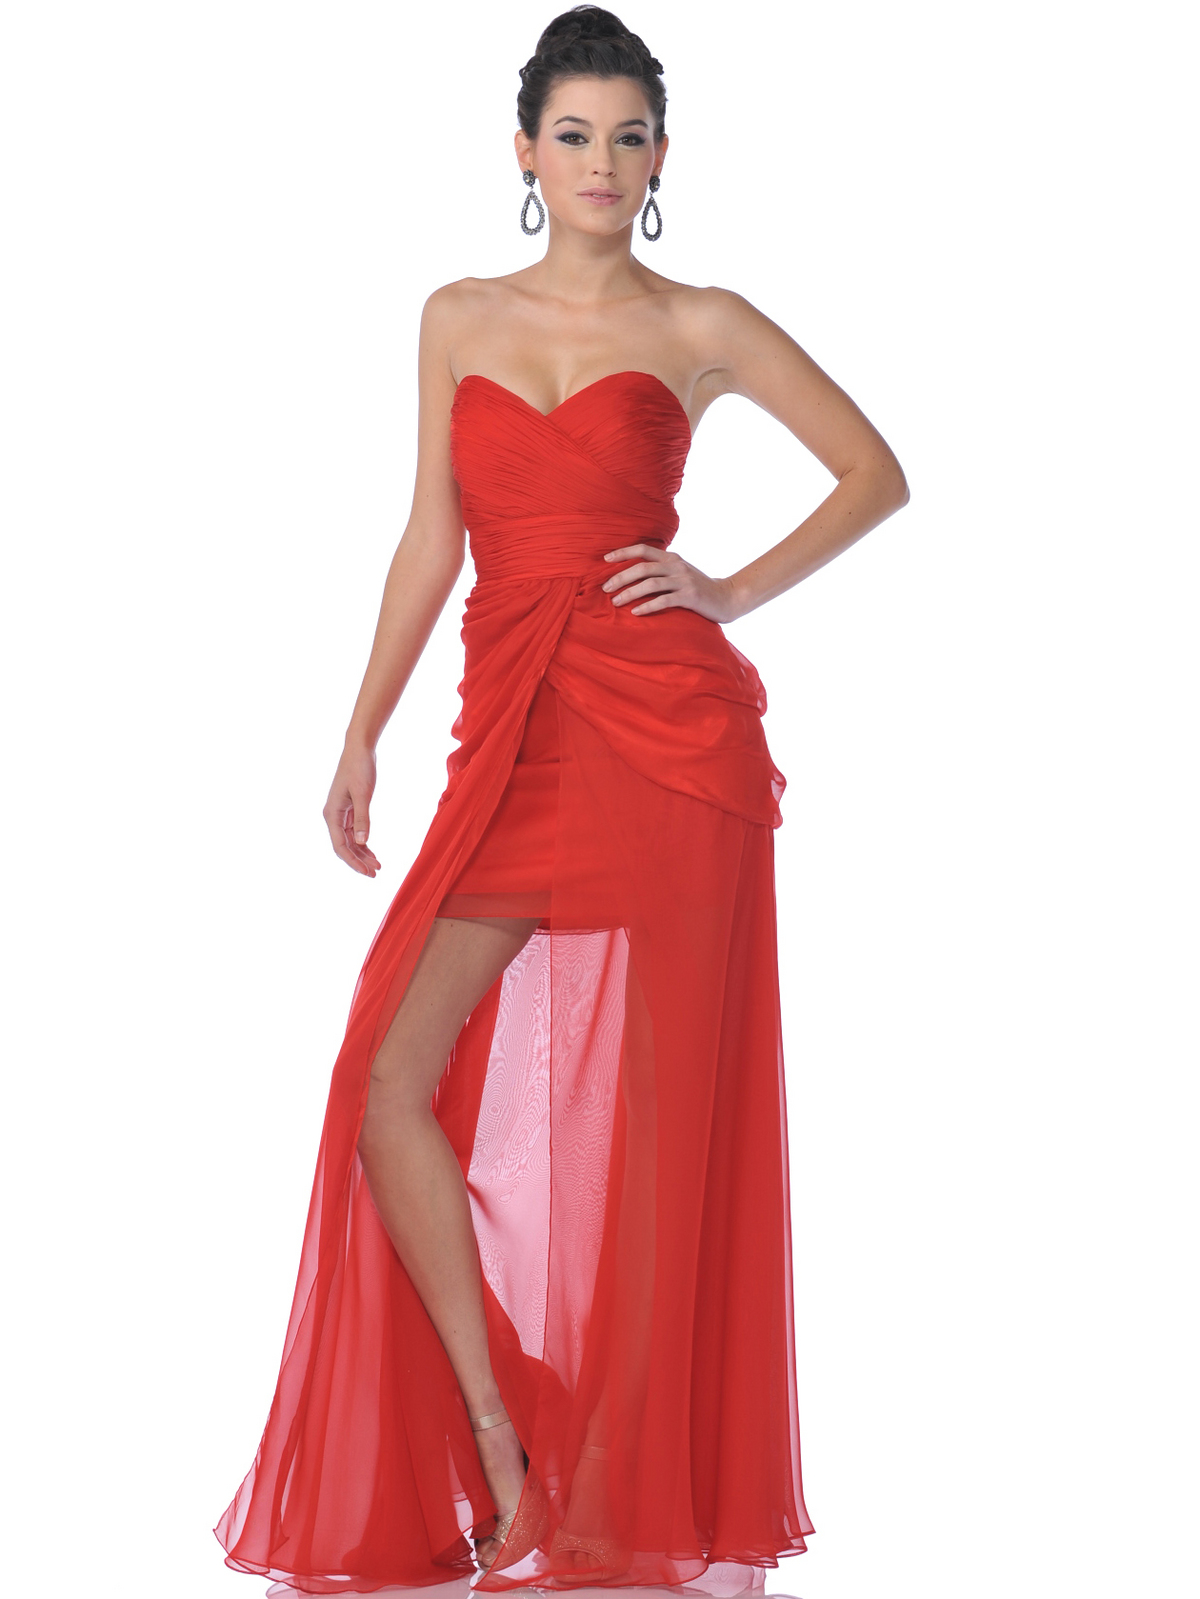 Strapless Sweetheart Short Evening Dress With Chiffon